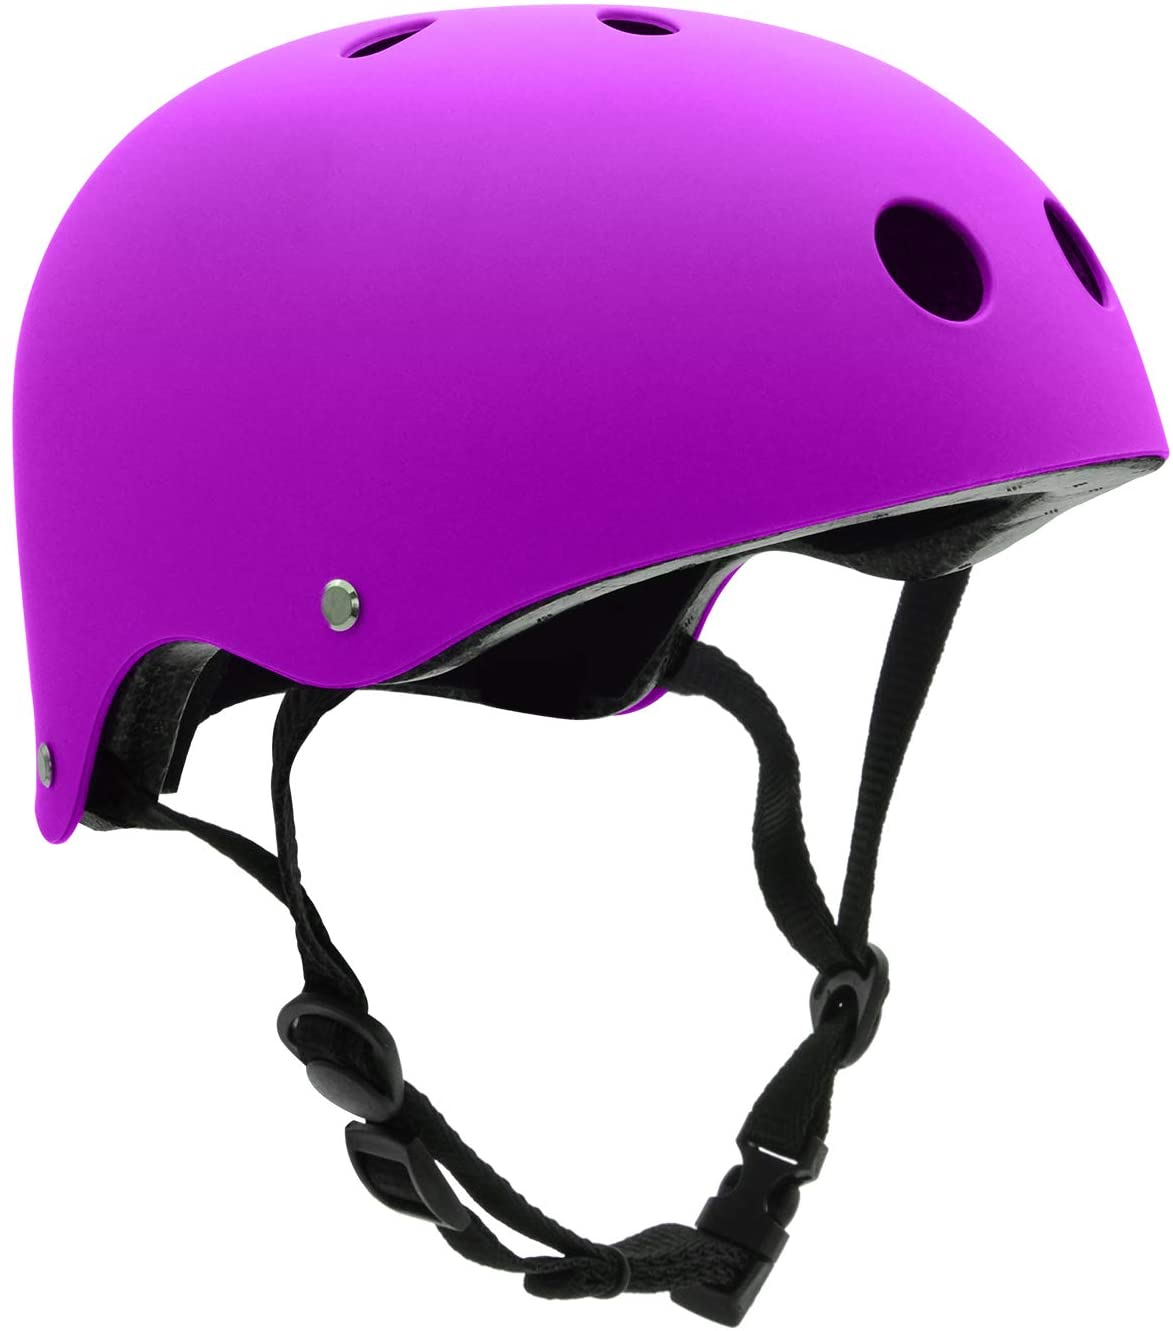 Skateboard Helmet Kids Youth Adult, Bike Helmet CPSC Certified for Skate Scooter Rollerblade Roller Skate Bicycle Cycling BMX Inline Skating Skiing Climbing Longboard with Removable Liner